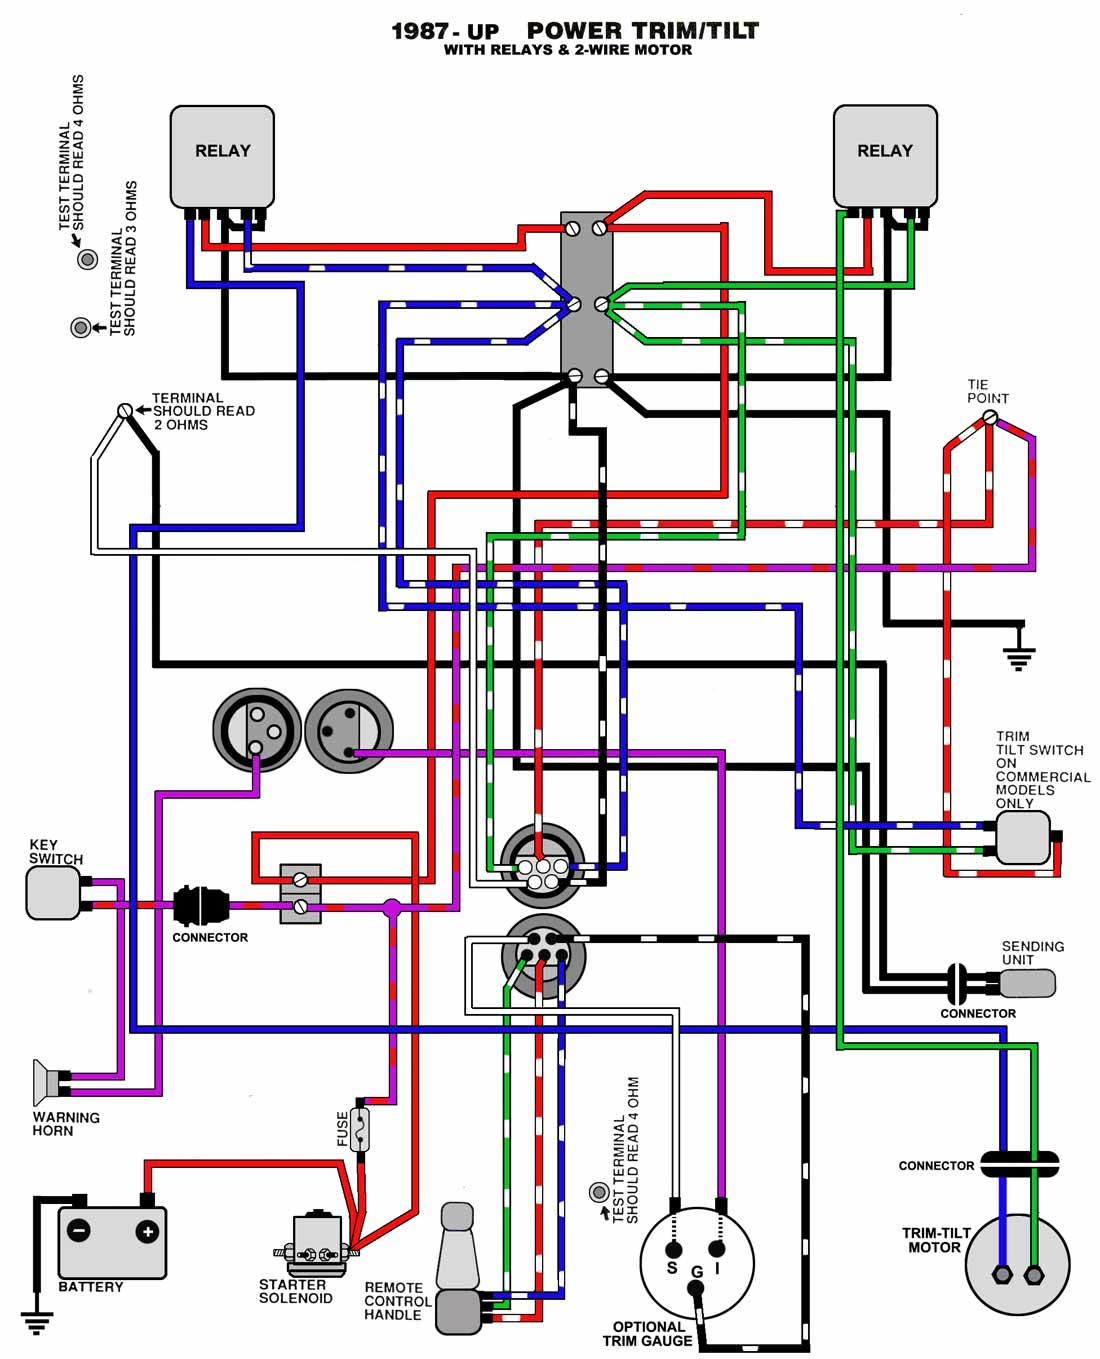 TnT_87_UP evinrude wiring diagram free evinrude wiring diagrams \u2022 free 1964 johnson outboard 40 hp wiring diagram at bayanpartner.co